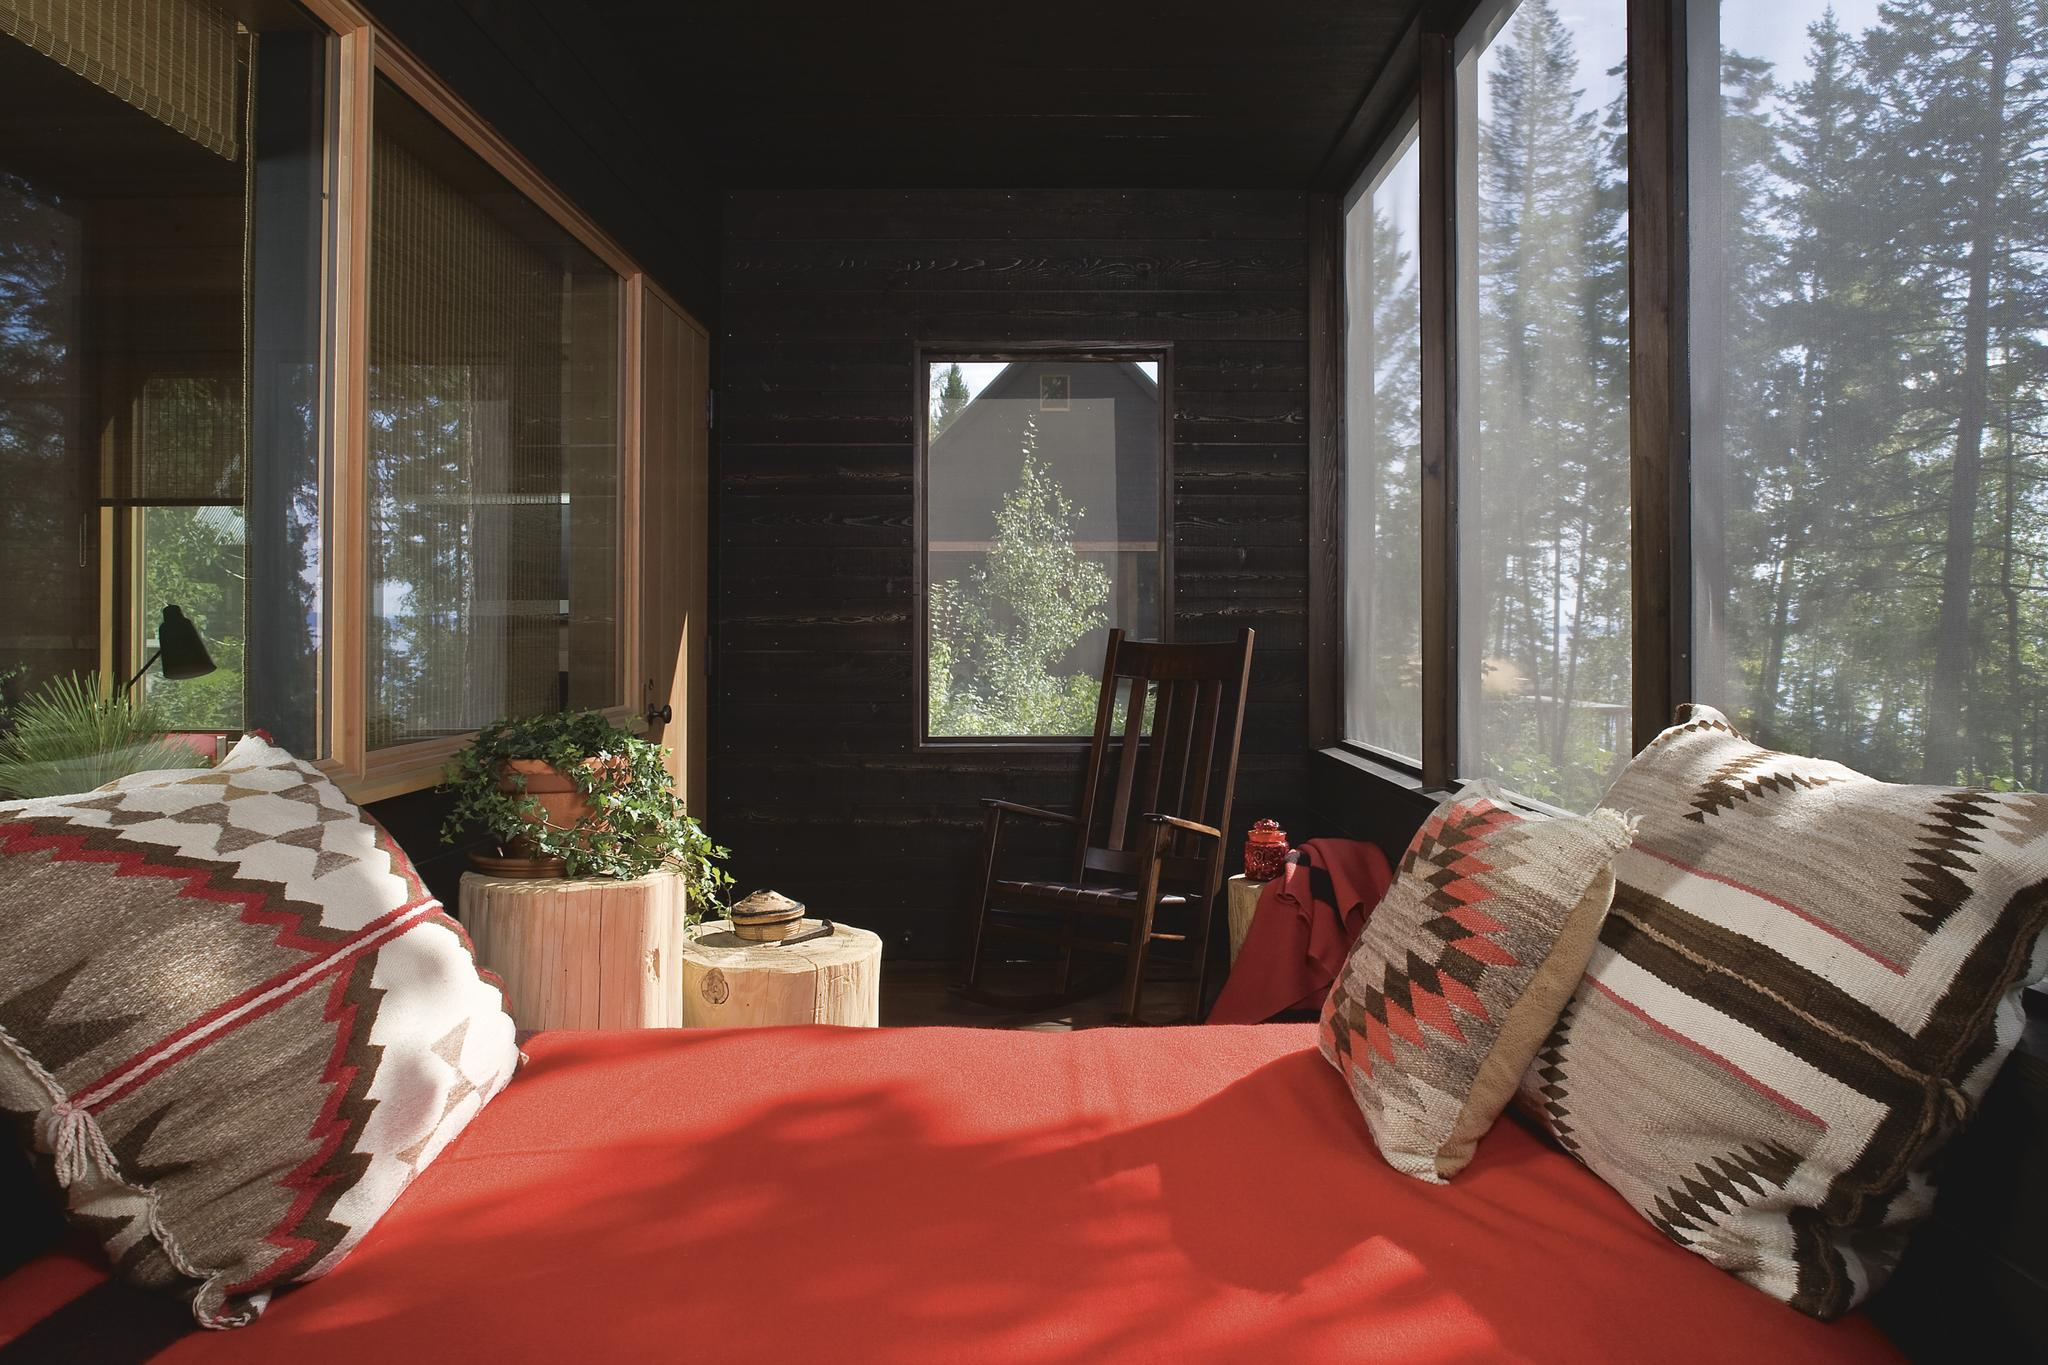 Guest House Sunroom